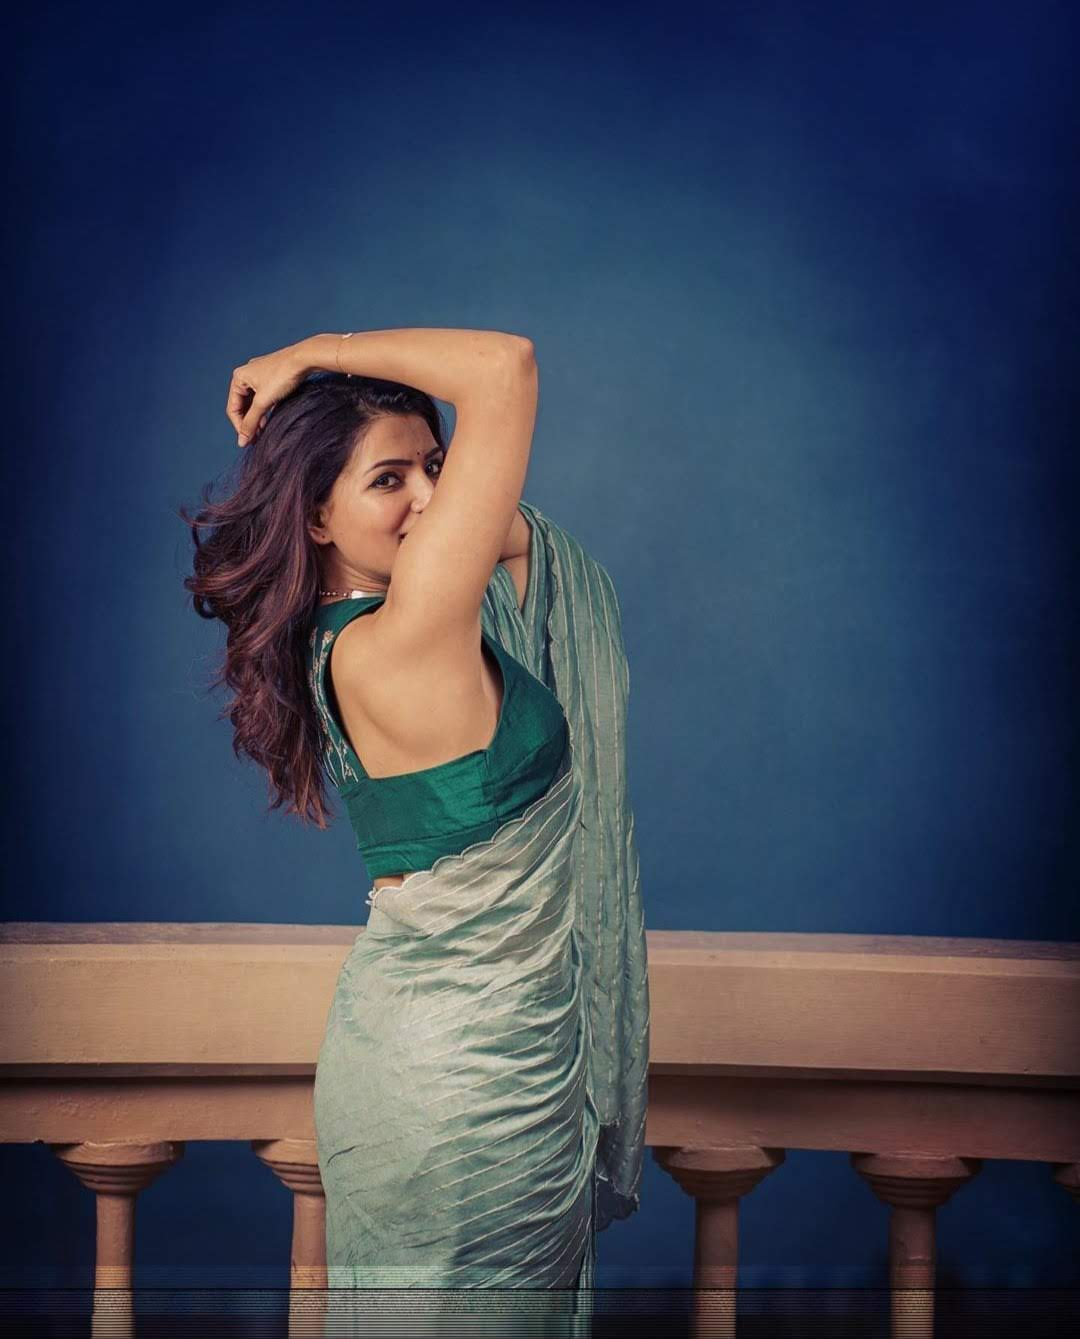 samantha-latest-92189